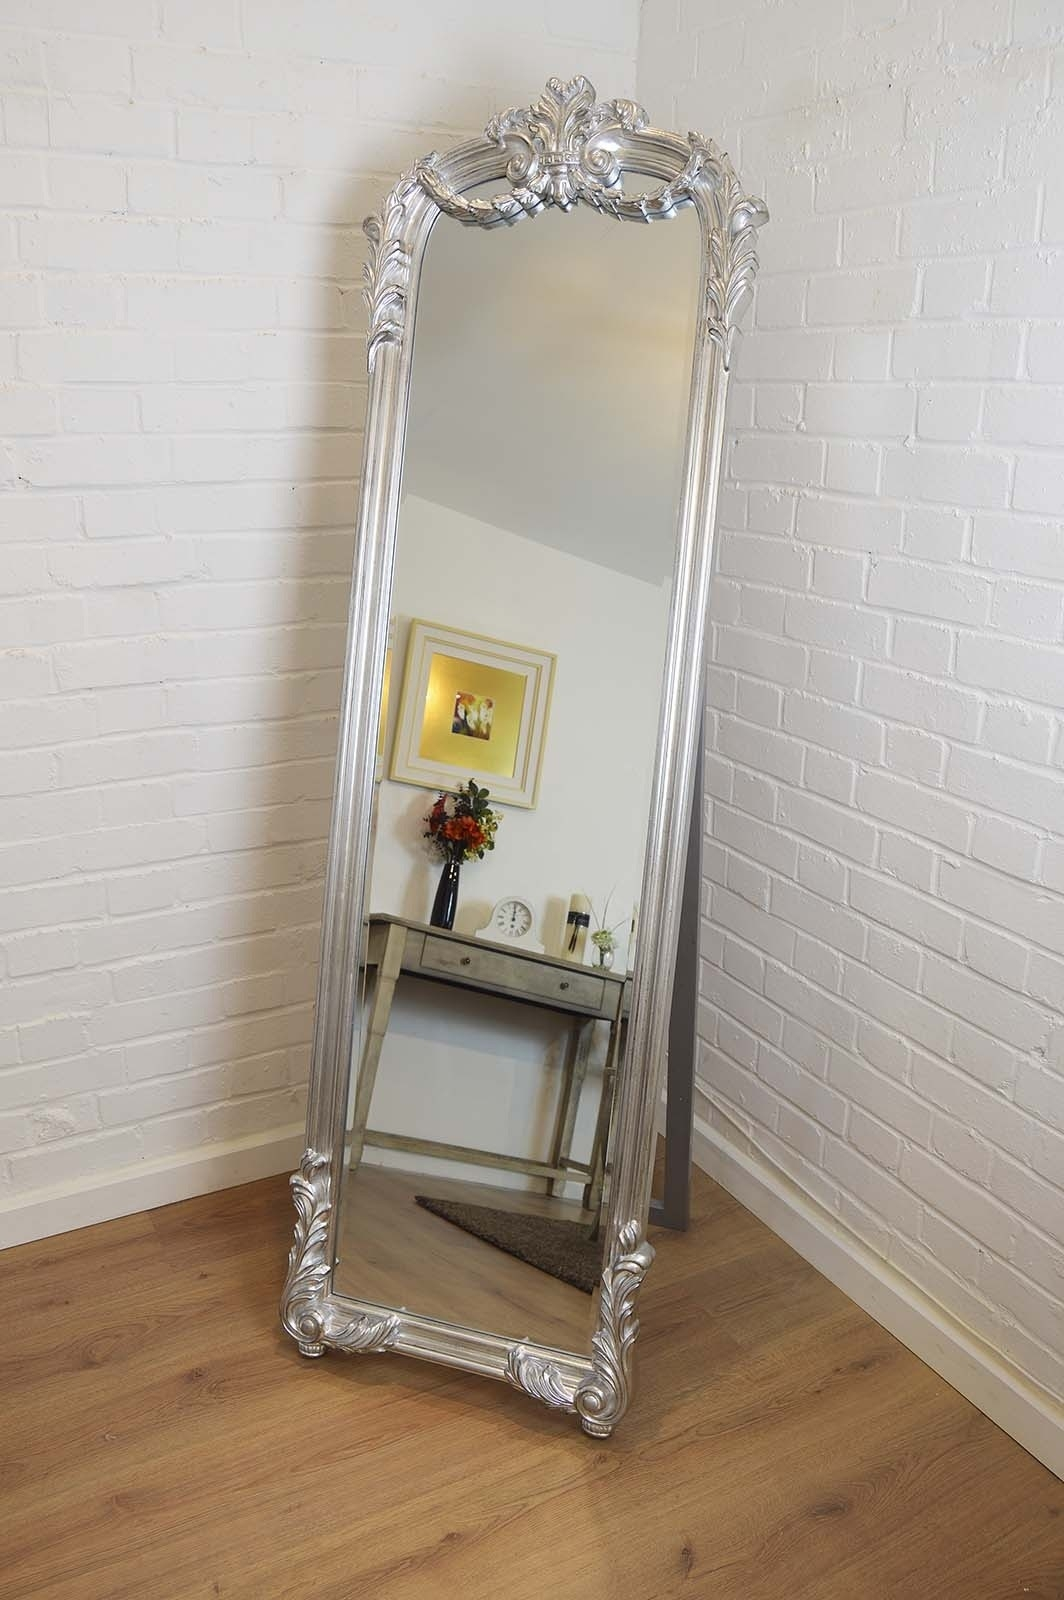 Silver Large Free Standing Antique Style Cheval Mirror 5ft10 X Intended For Cheval Free Standing Mirror (Image 13 of 15)